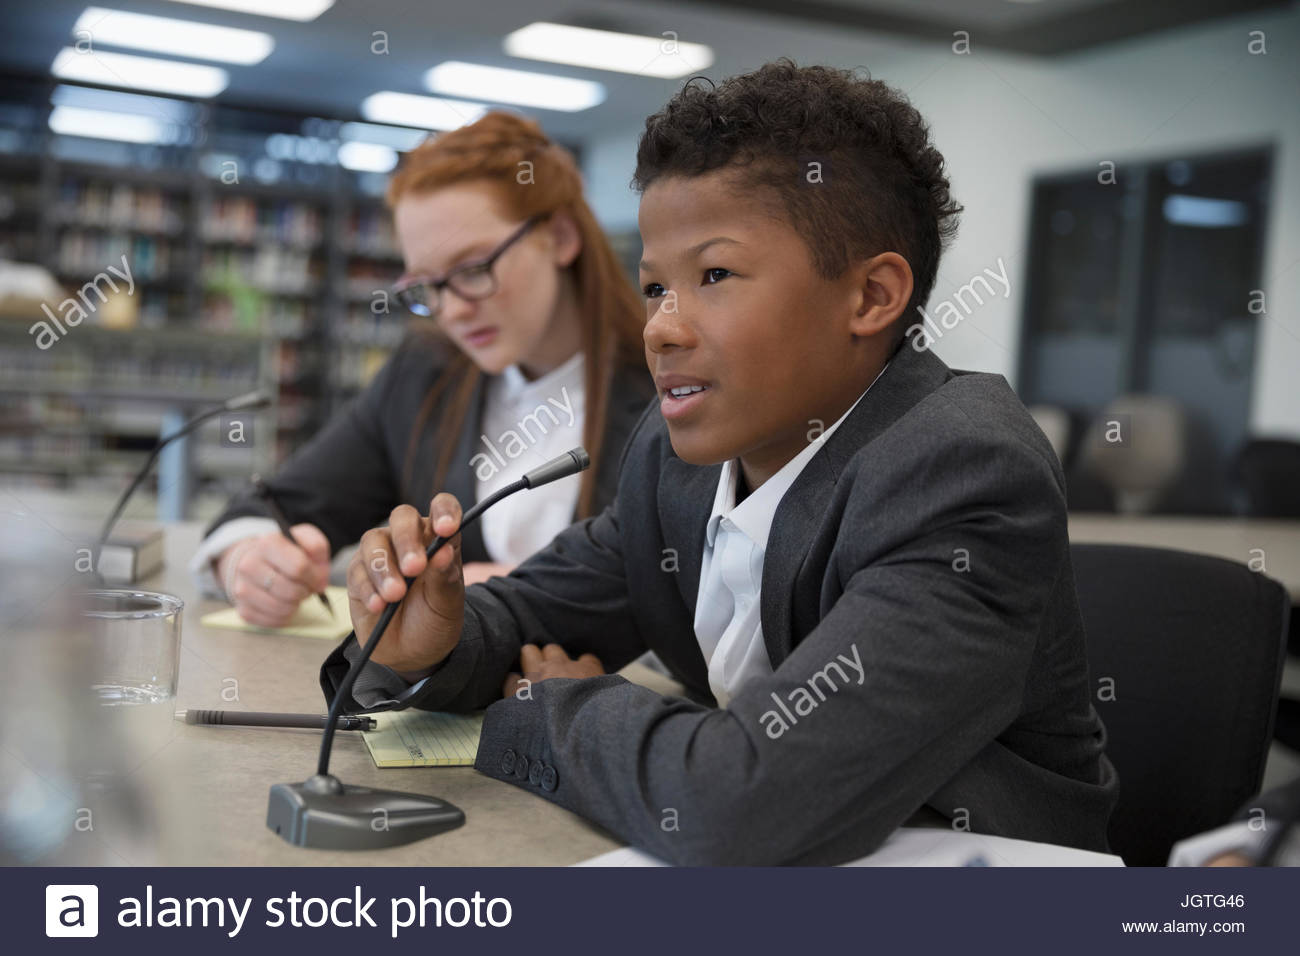 Boy middle school student talking into microphone in debate club - Stock Image